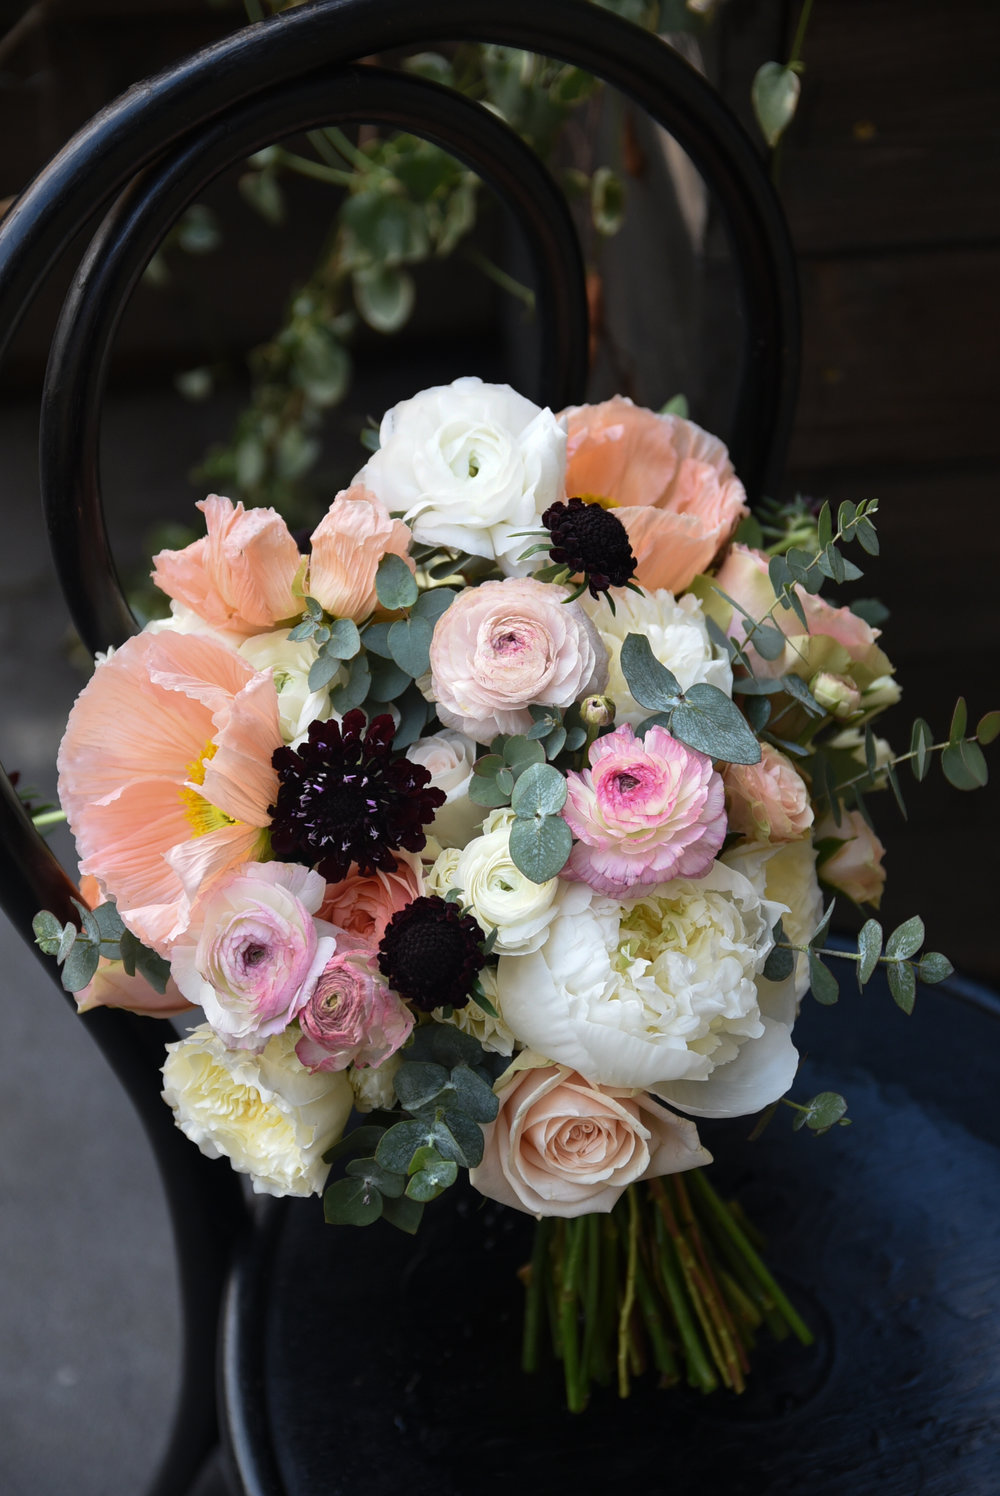 Bouquet of peach, pink, blue, and black